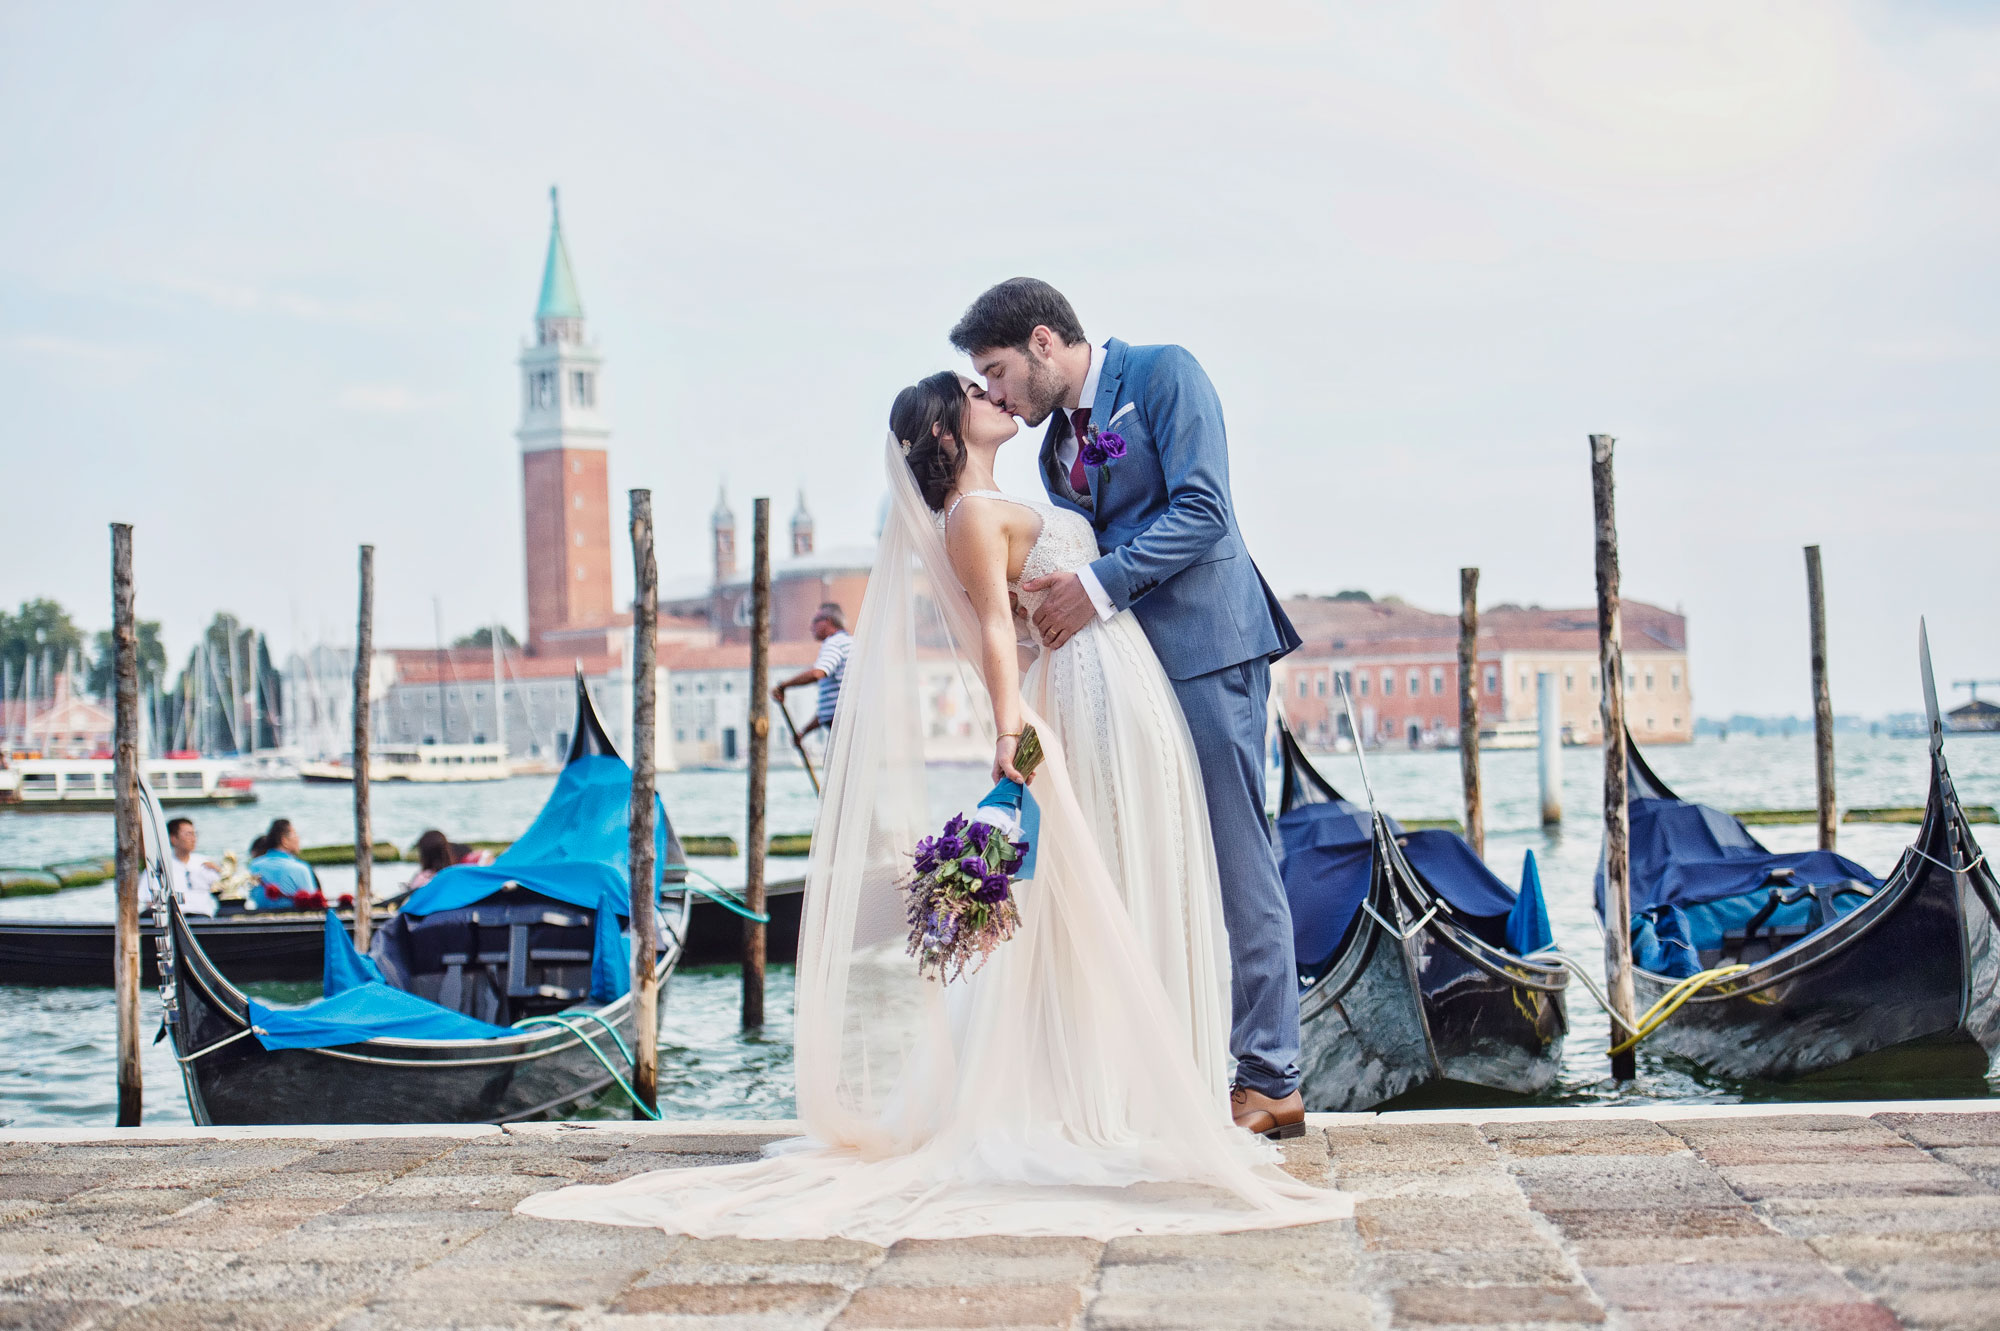 Lifestyle weddings in Italy